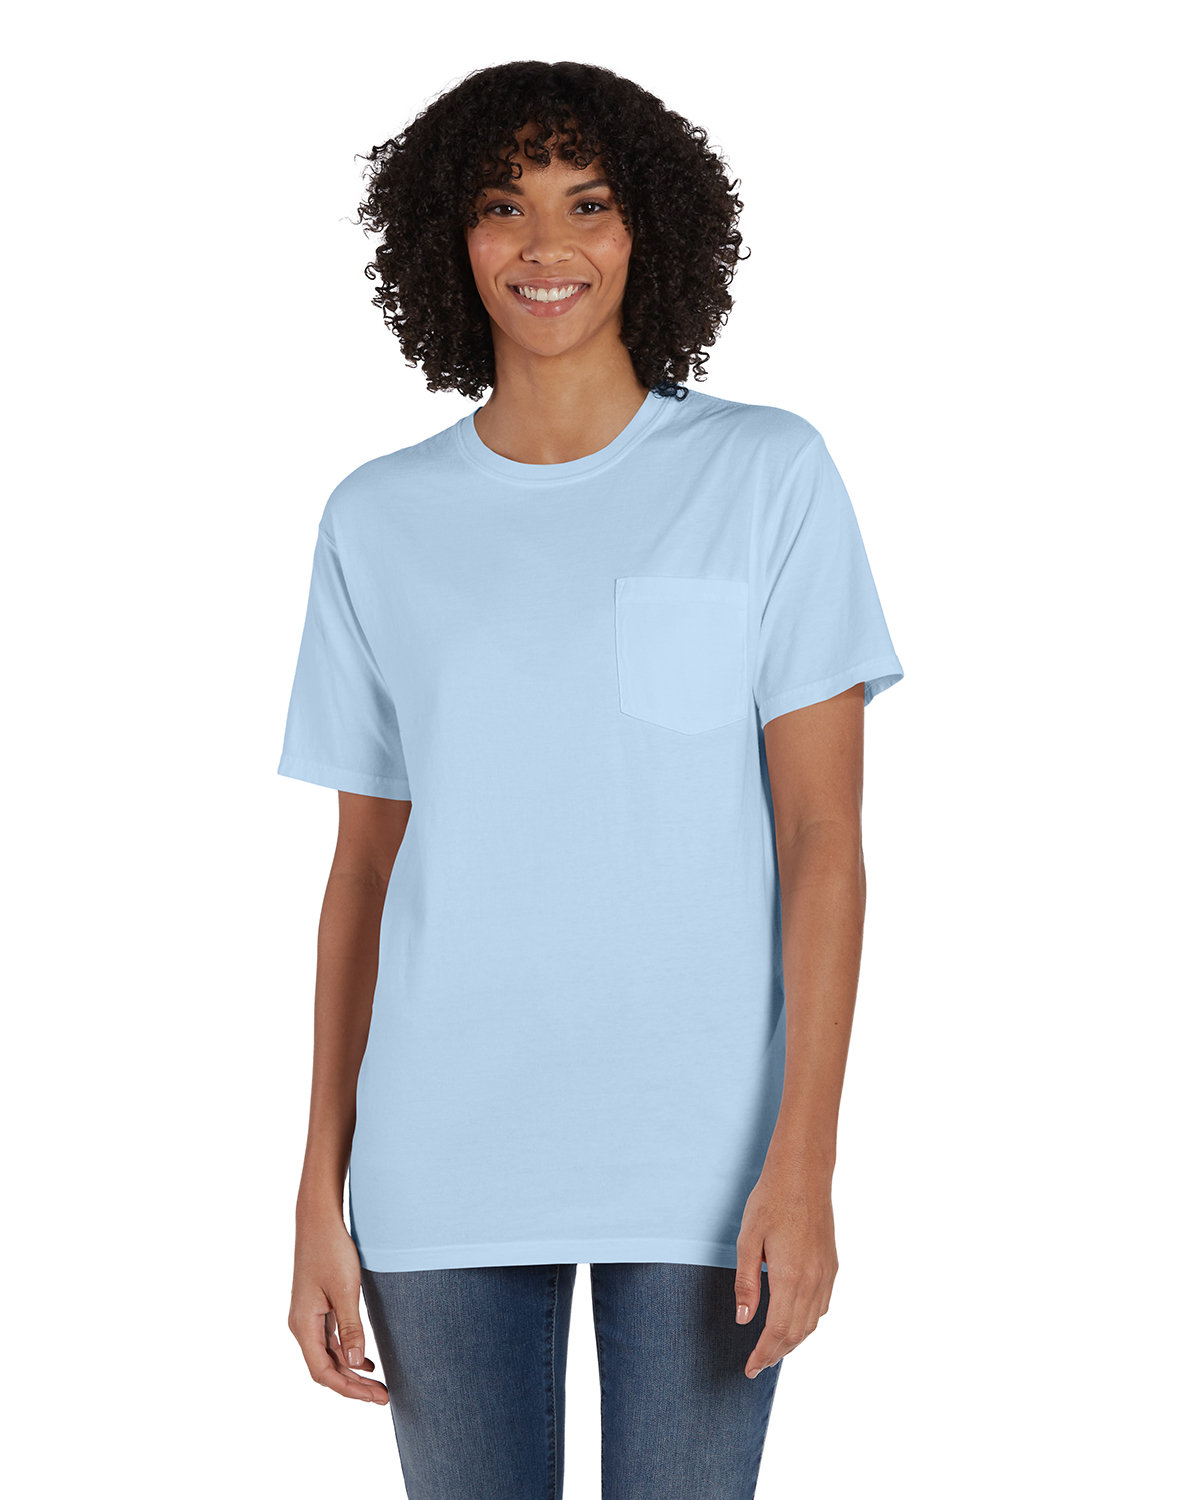 ComfortWash by Hanes Unisex 5.5 oz., 100% Ringspun Cotton Garment-Dyed T-Shirt with Pocket SOOTHING BLUE